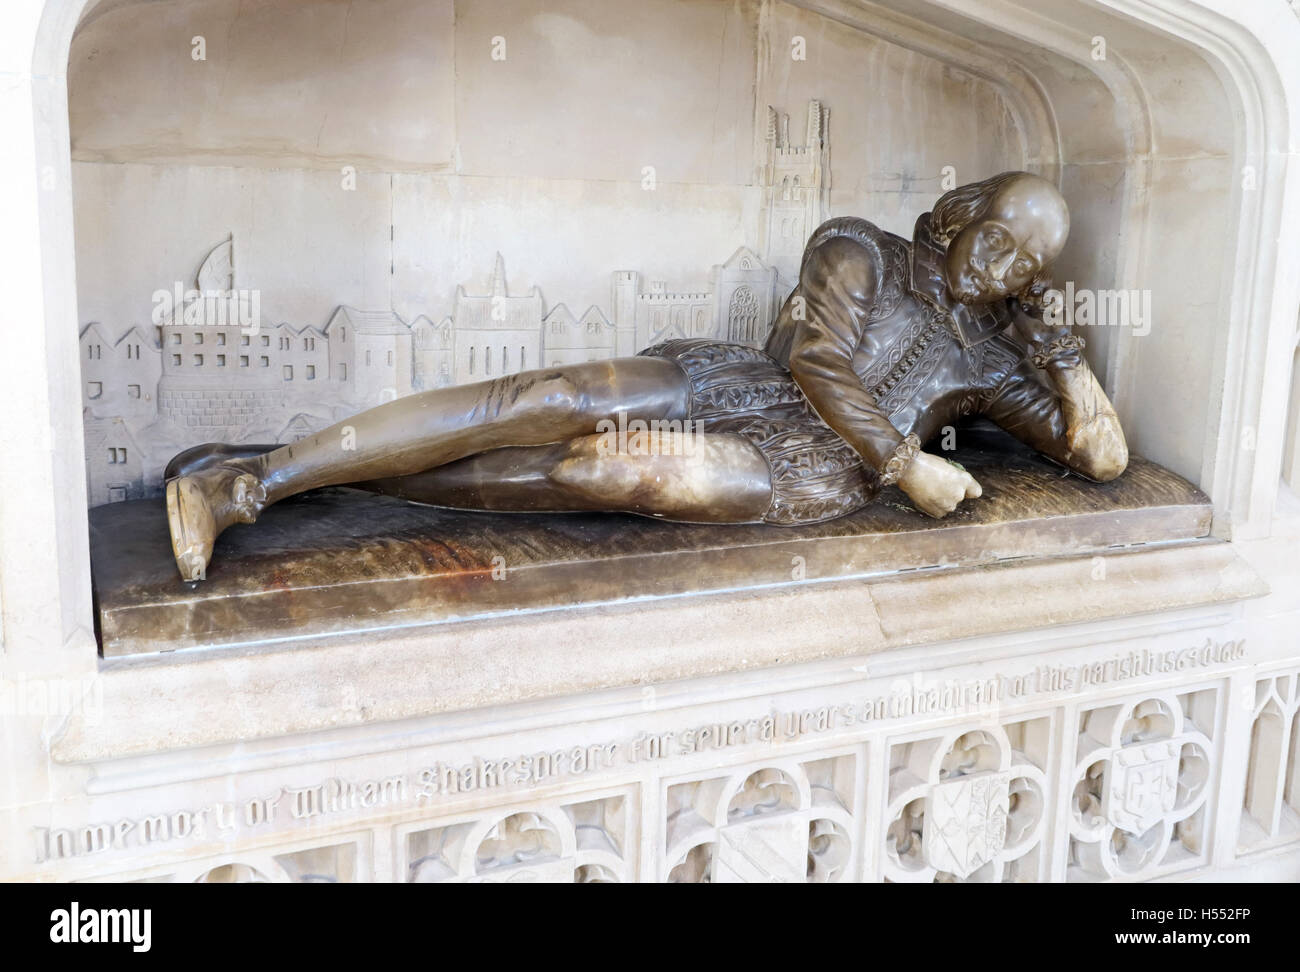 London,River,Thames,Play,plays,author,alabaster,holding,a,quill,reclining,famous,play,plays,playwright,religion,religious,sacred,dirty,city,centre,zone1,zone,one,1,William Shakespeare,William Shakespeare statue,Southwark Cathedral,city centre,GoTonySmith,@HotpixUK,Tony,Smith,UK,GB,Great,Britain,United,Kingdom,English,British,England,tourist,travel,tourists,tourism,bald,Buy Pictures of,Buy Images Of,Images of,Stock Images,Tony Smith,United Kingdom,Great Britain,British Isles